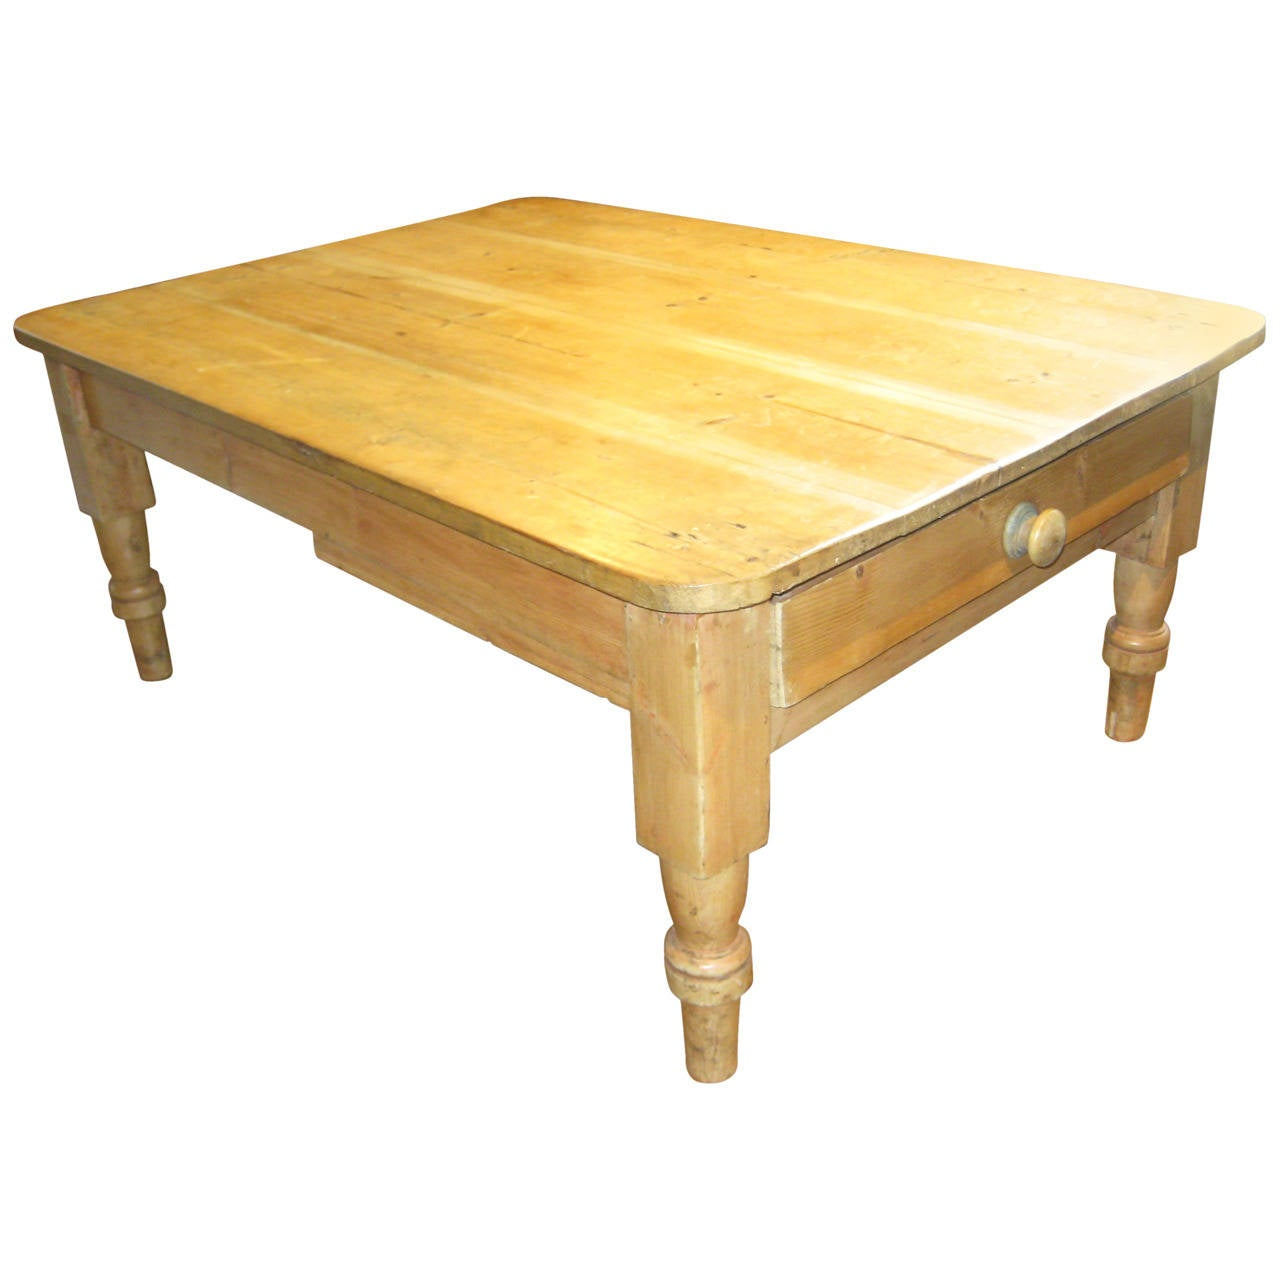 Pine coffee table for sale at 1stdibs for Pine coffee table